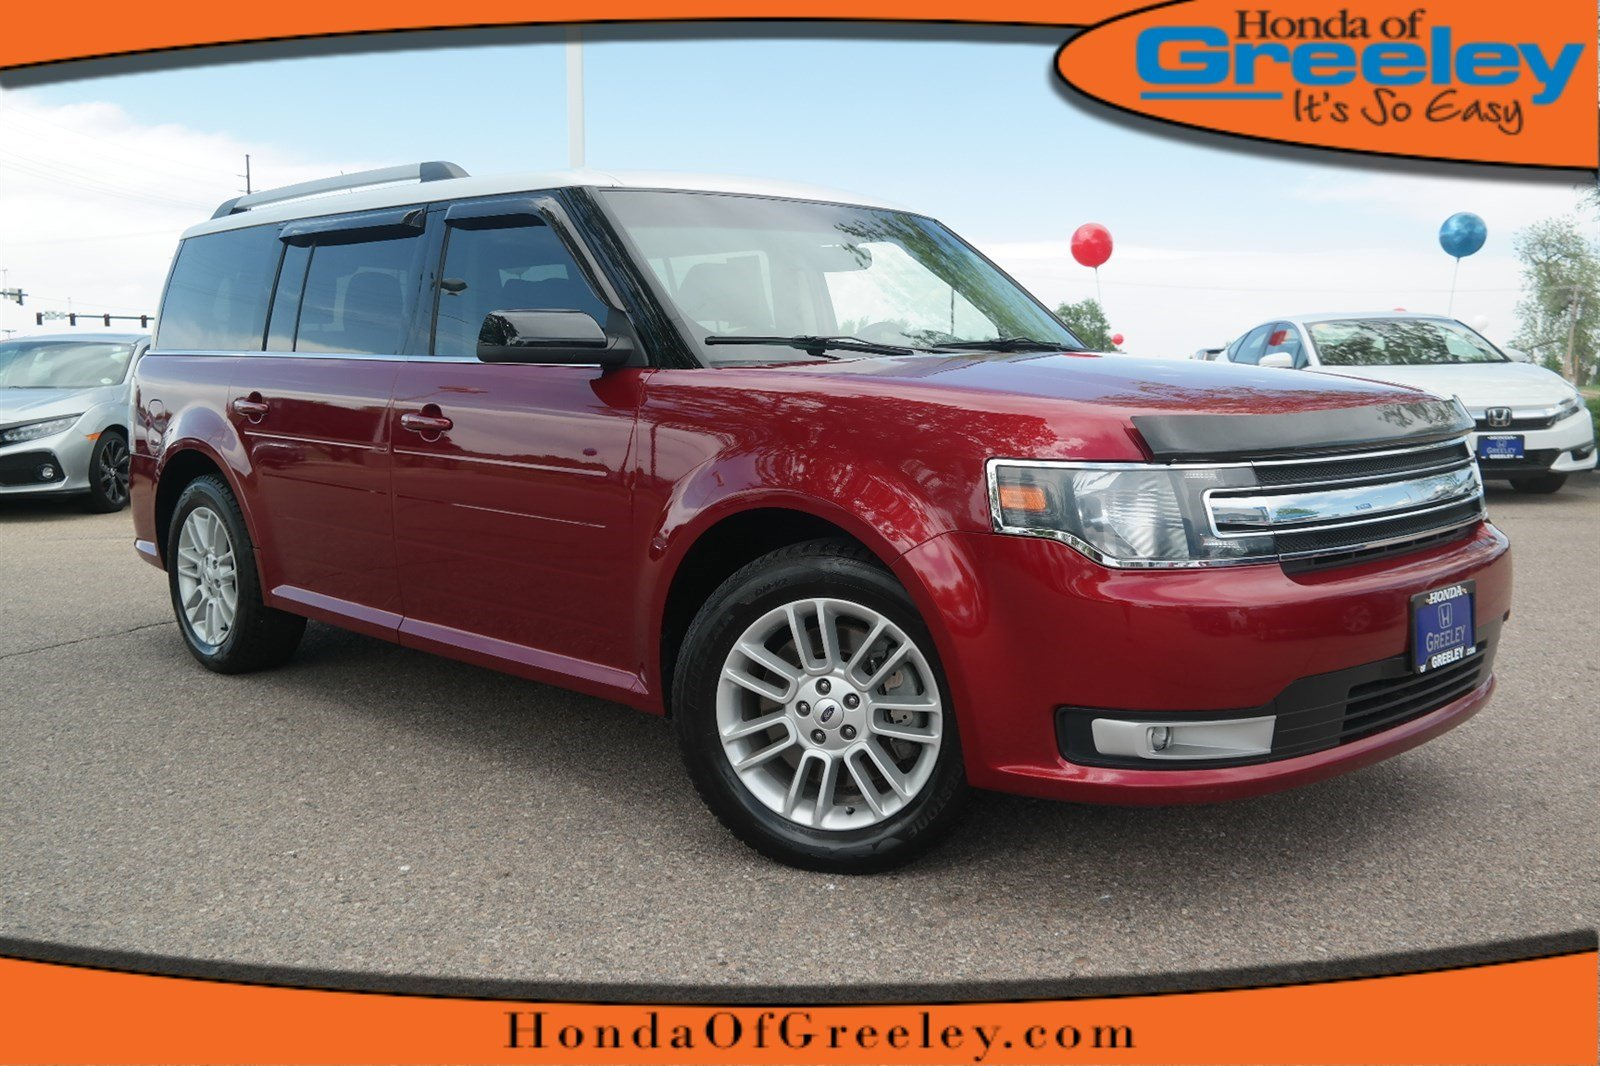 Photo Pre-Owned 2014 Ford Flex SEL All Wheel Drive Sport Utility For Sale in Greeley, Loveland, Windsor, Fort Collins, Longmont, Colorado